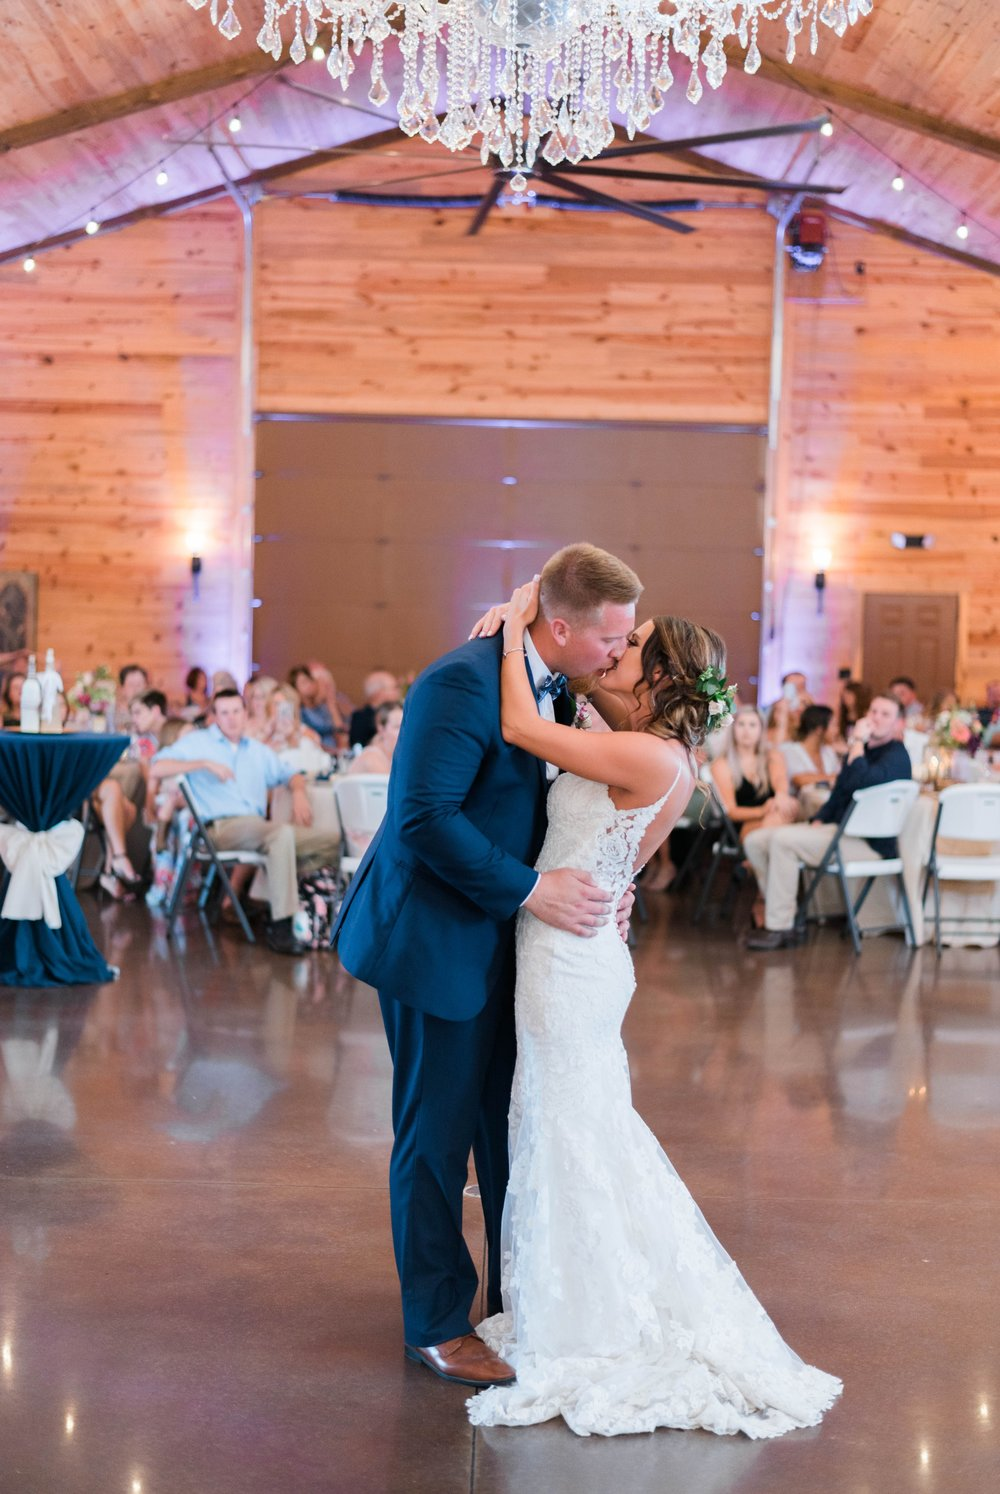 atkinson farms_VirginiaWeddingPhotographer_LynchburgWeddingPhotographer_DylanandLauren 44.jpg